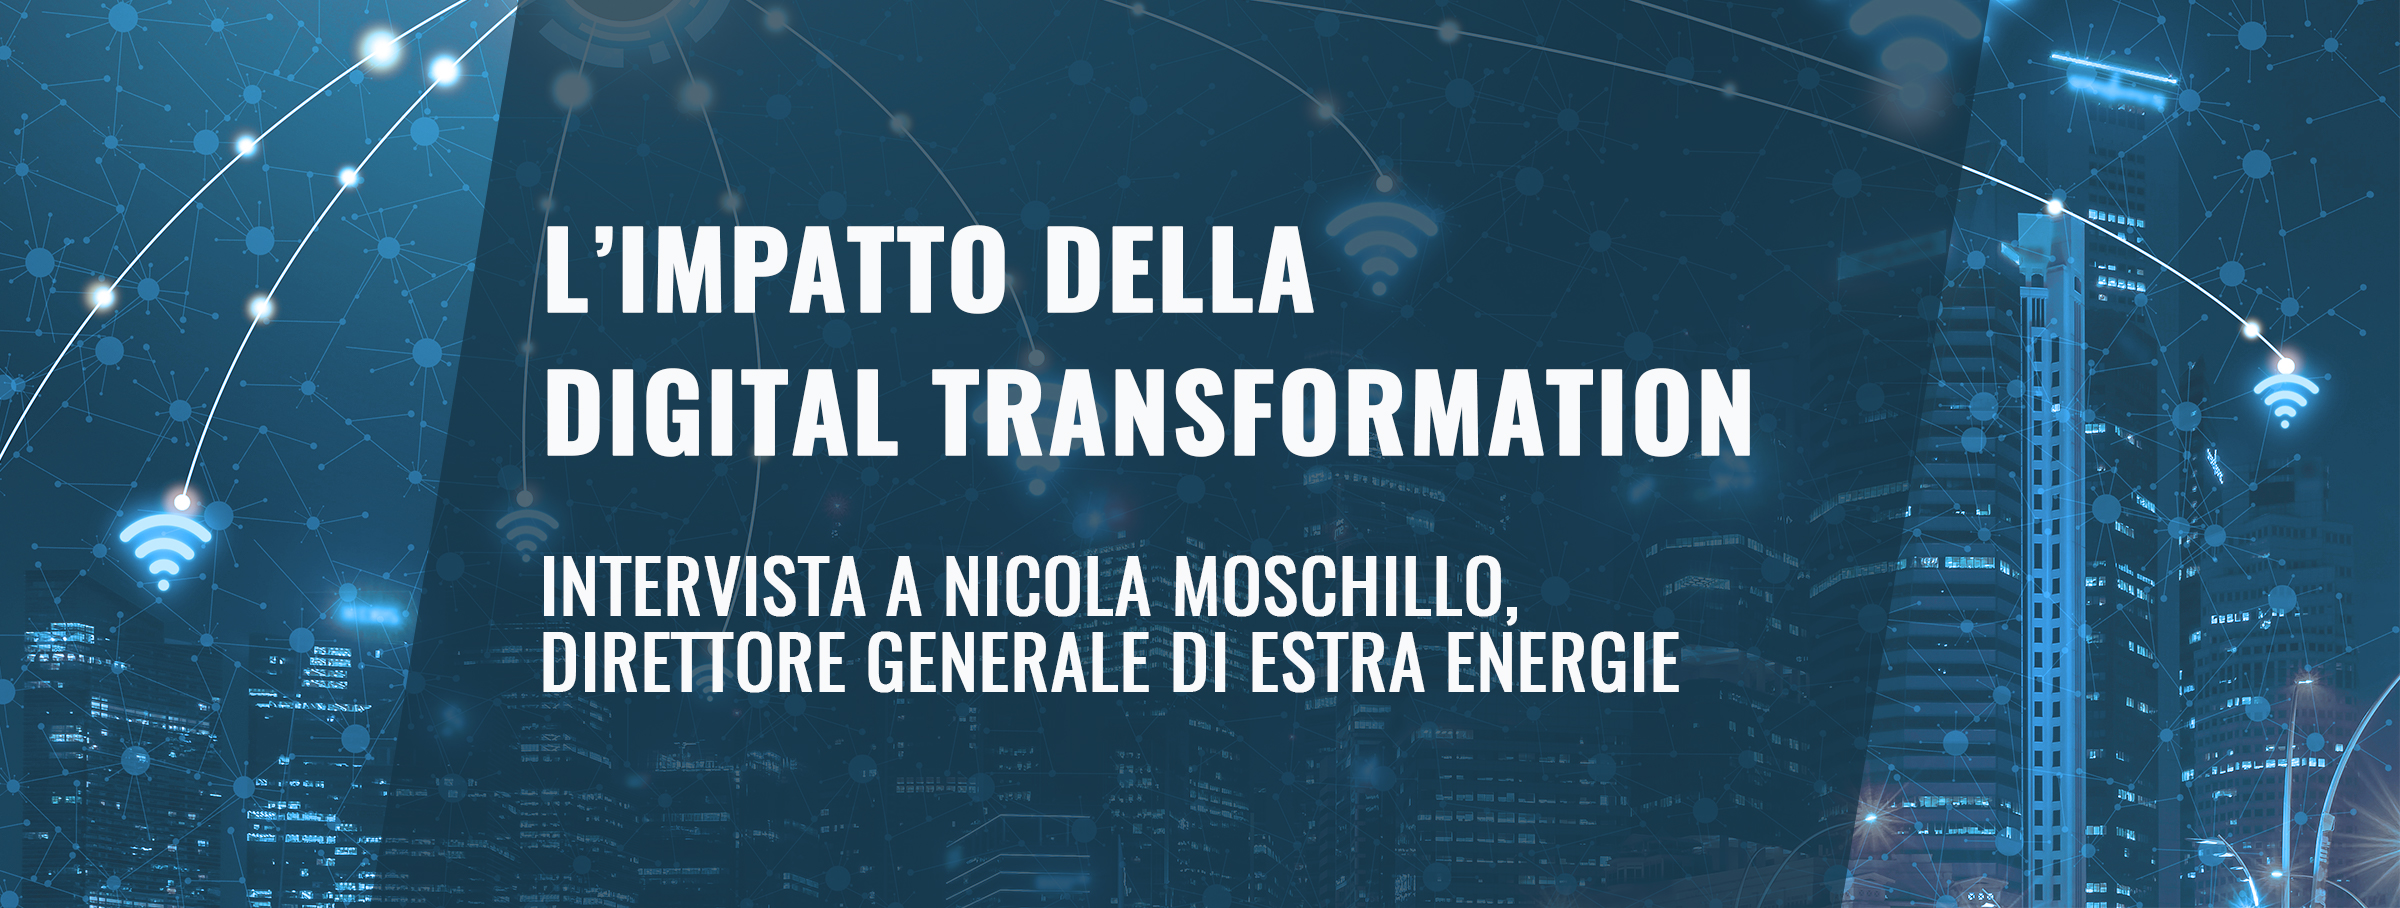 Nicola Moschillo e la Digital Transformation